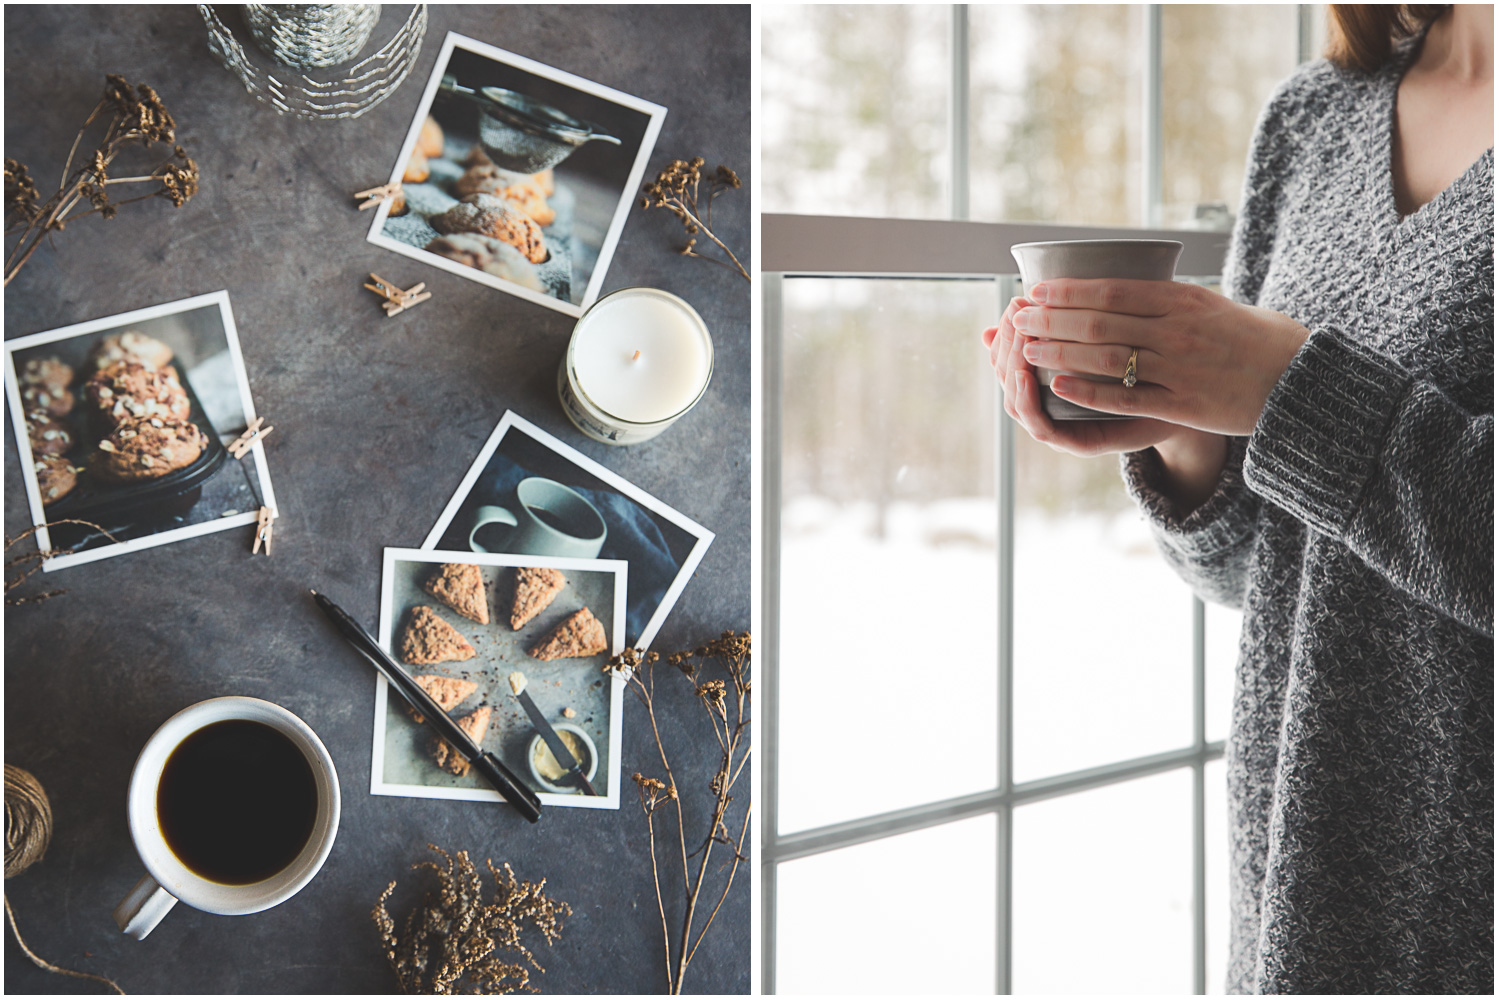 09_Bragg_Kate_January_Mood_Board_Coffee_Window.jpg